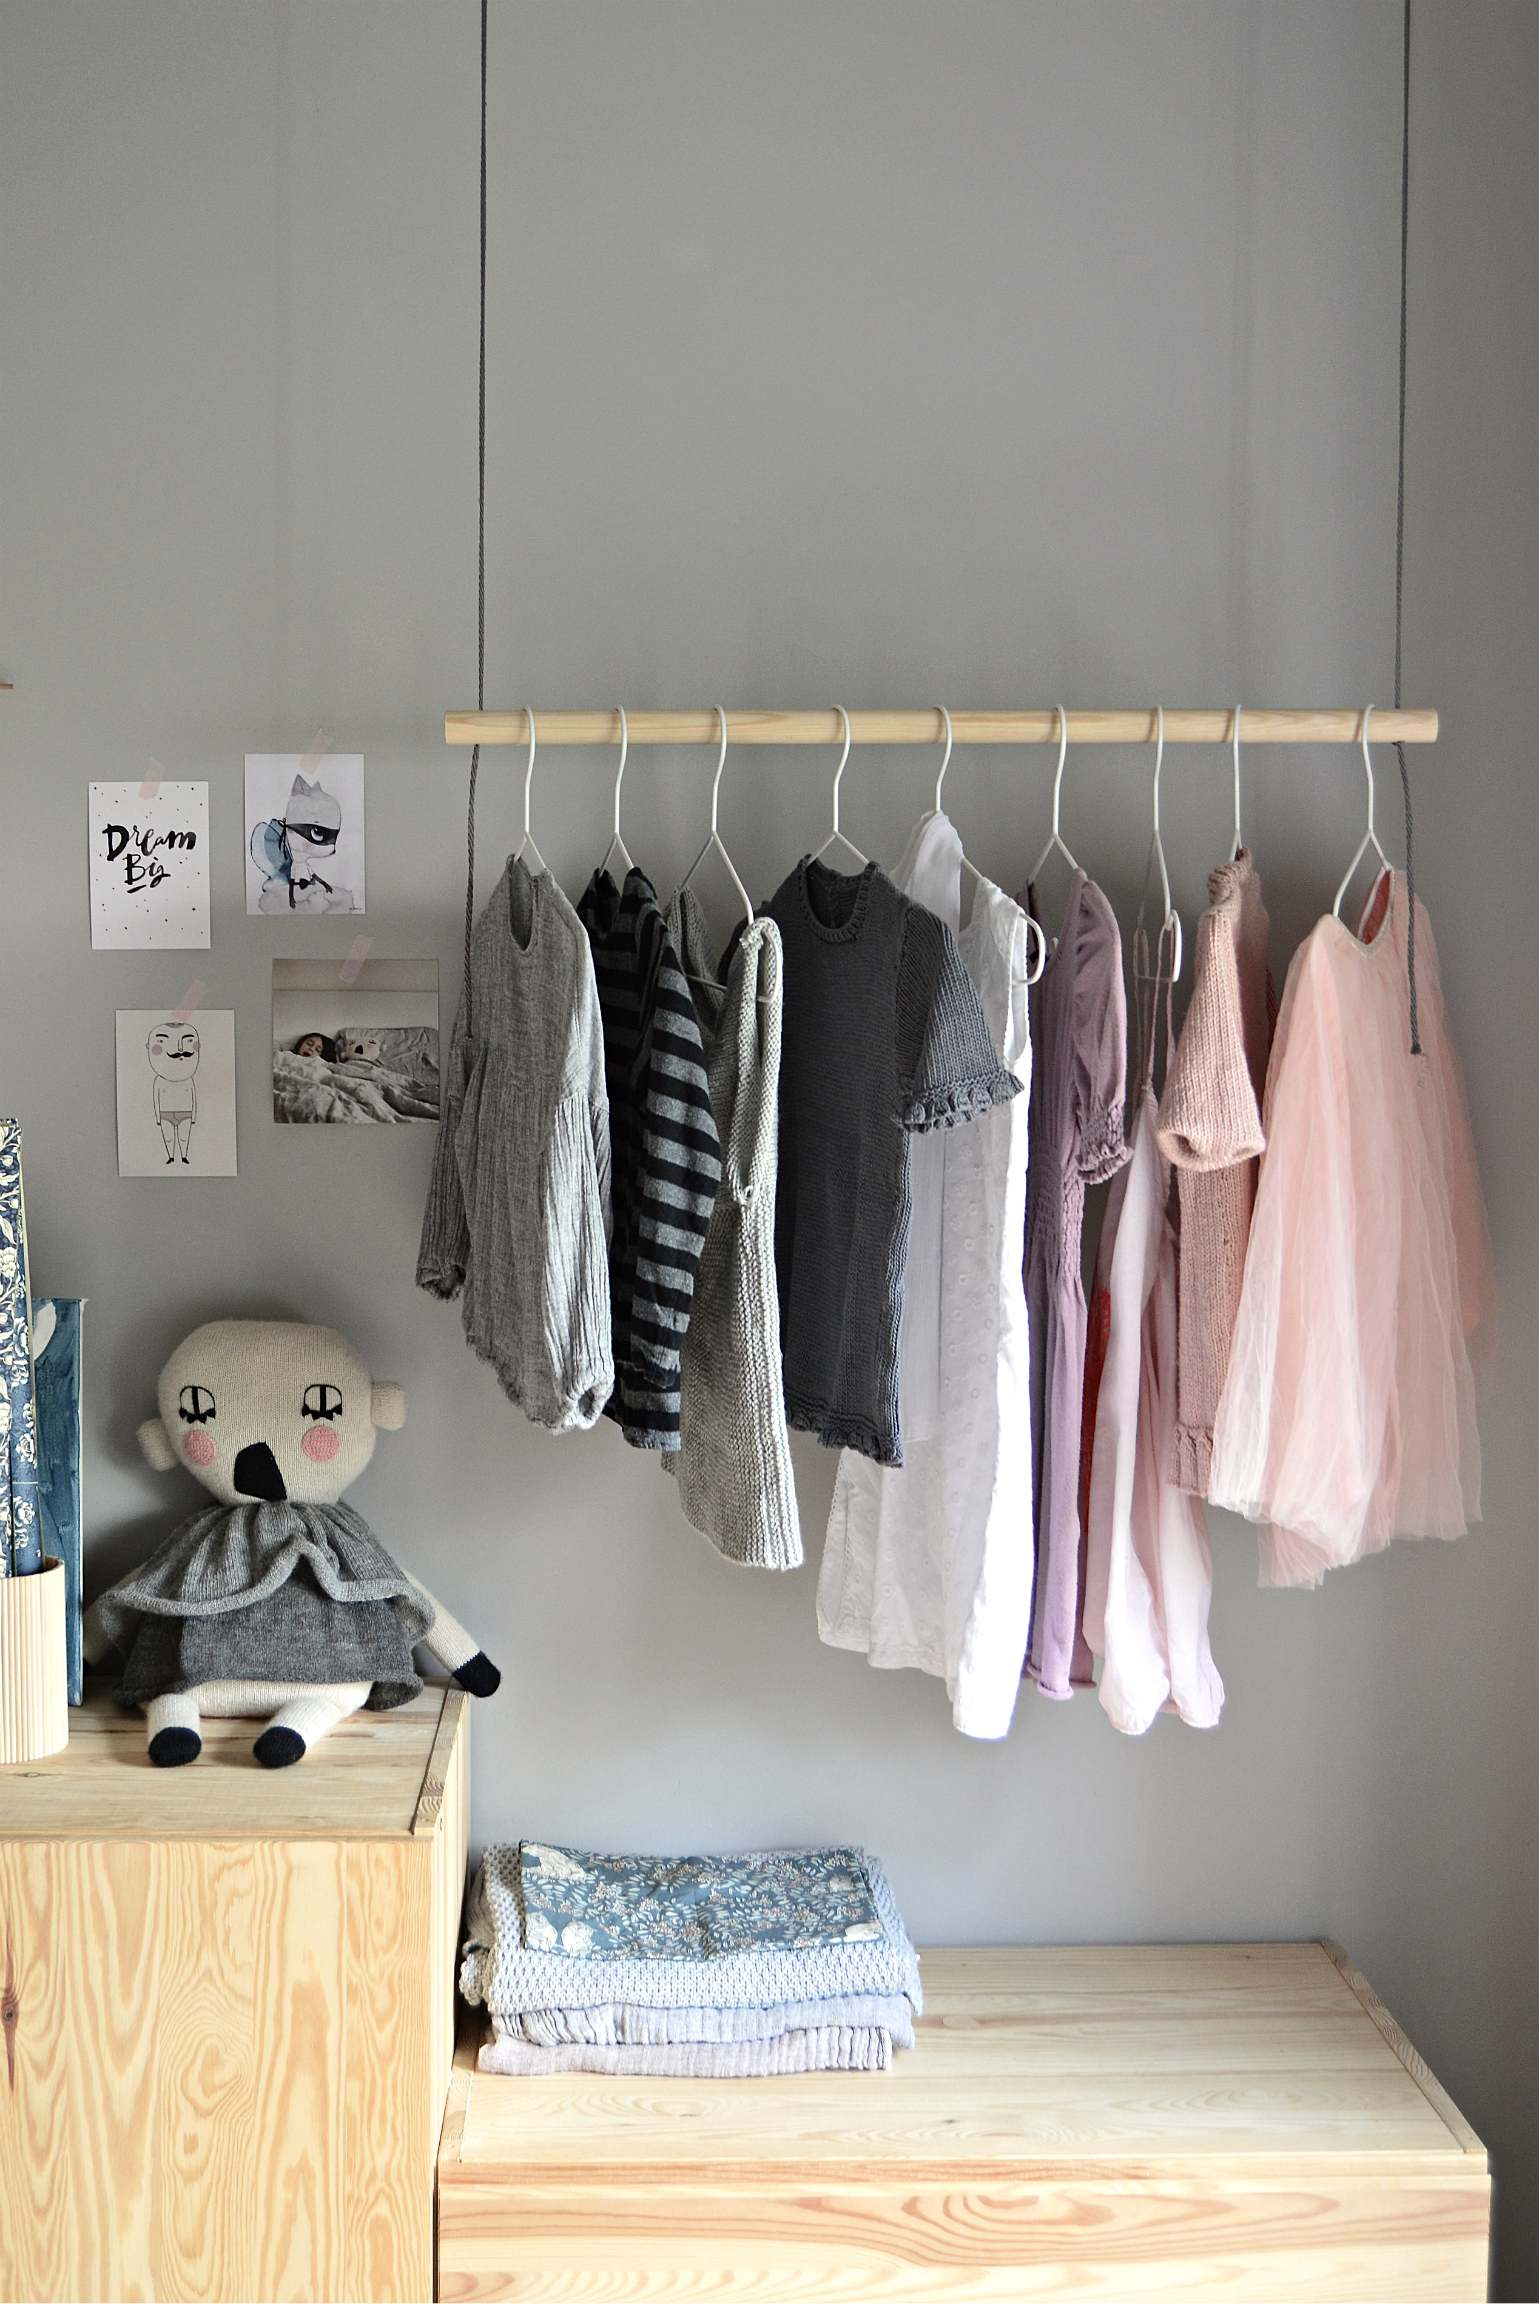 Hang On With This Diy Hanging Clothes Rack Diy Home Decor